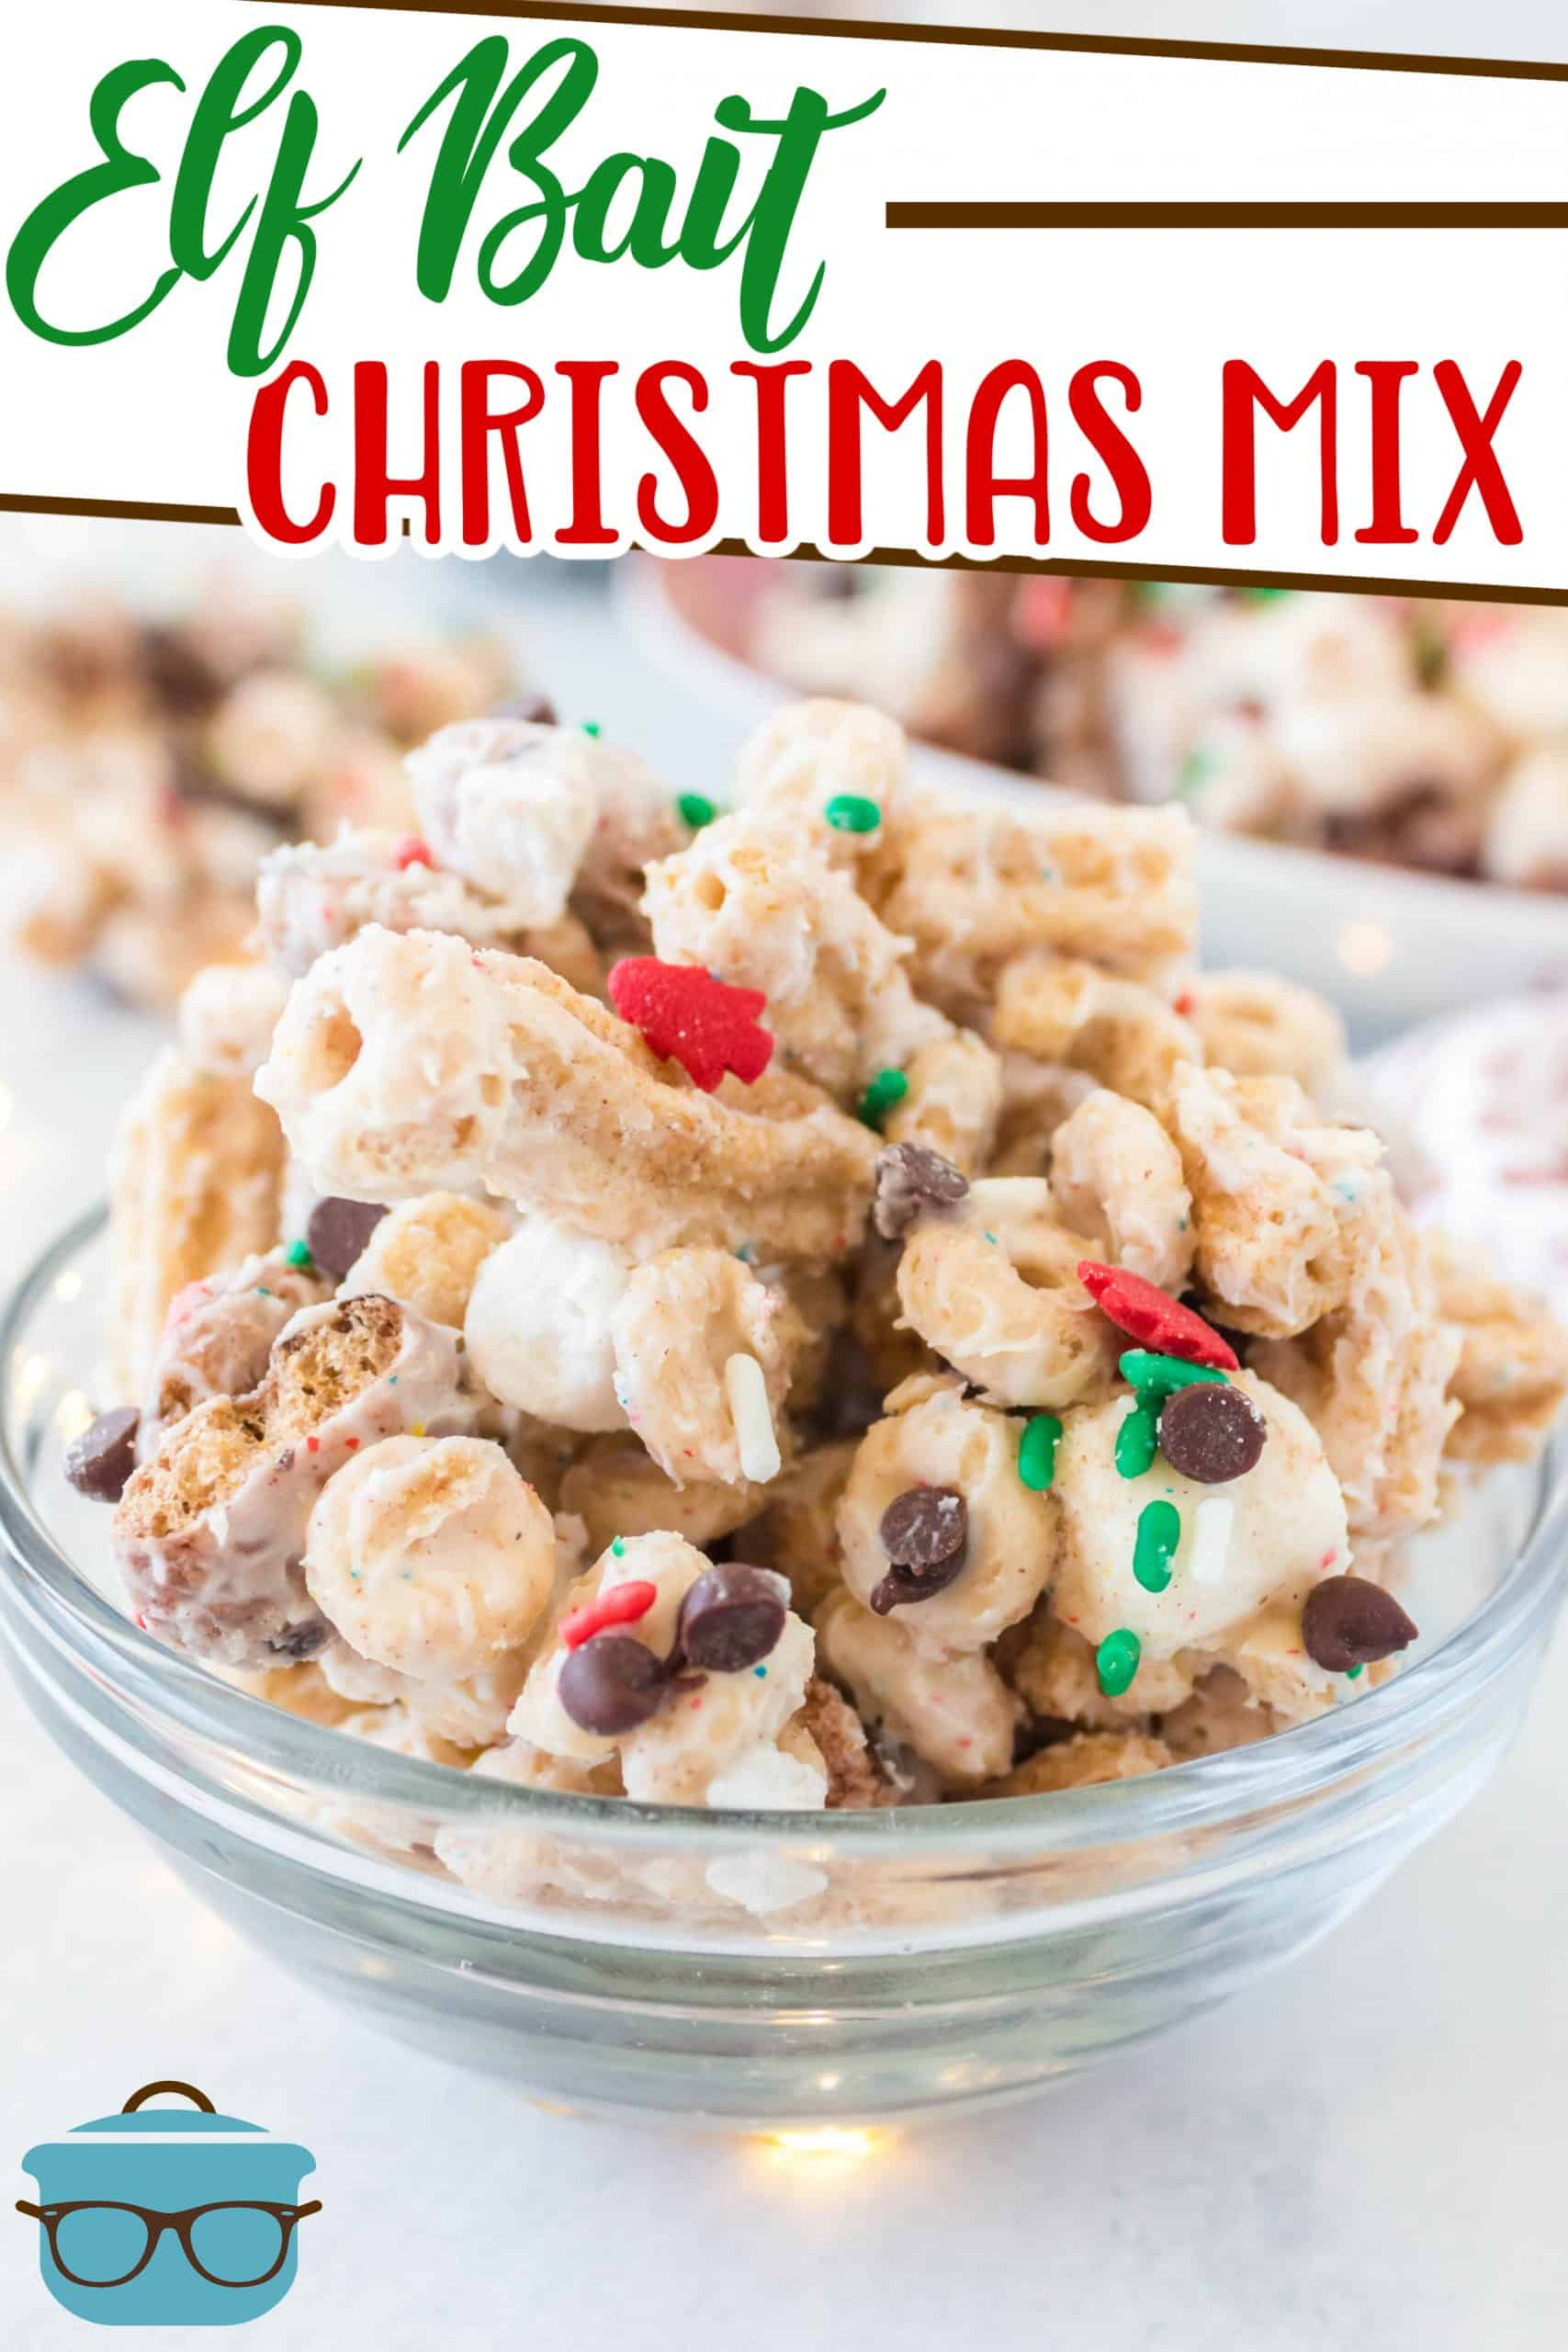 This Elf Bait Christmas Mix recipe is such a fun holiday treat! Grab your favorite cereal, some chocolate and some sprinkles. No baking!